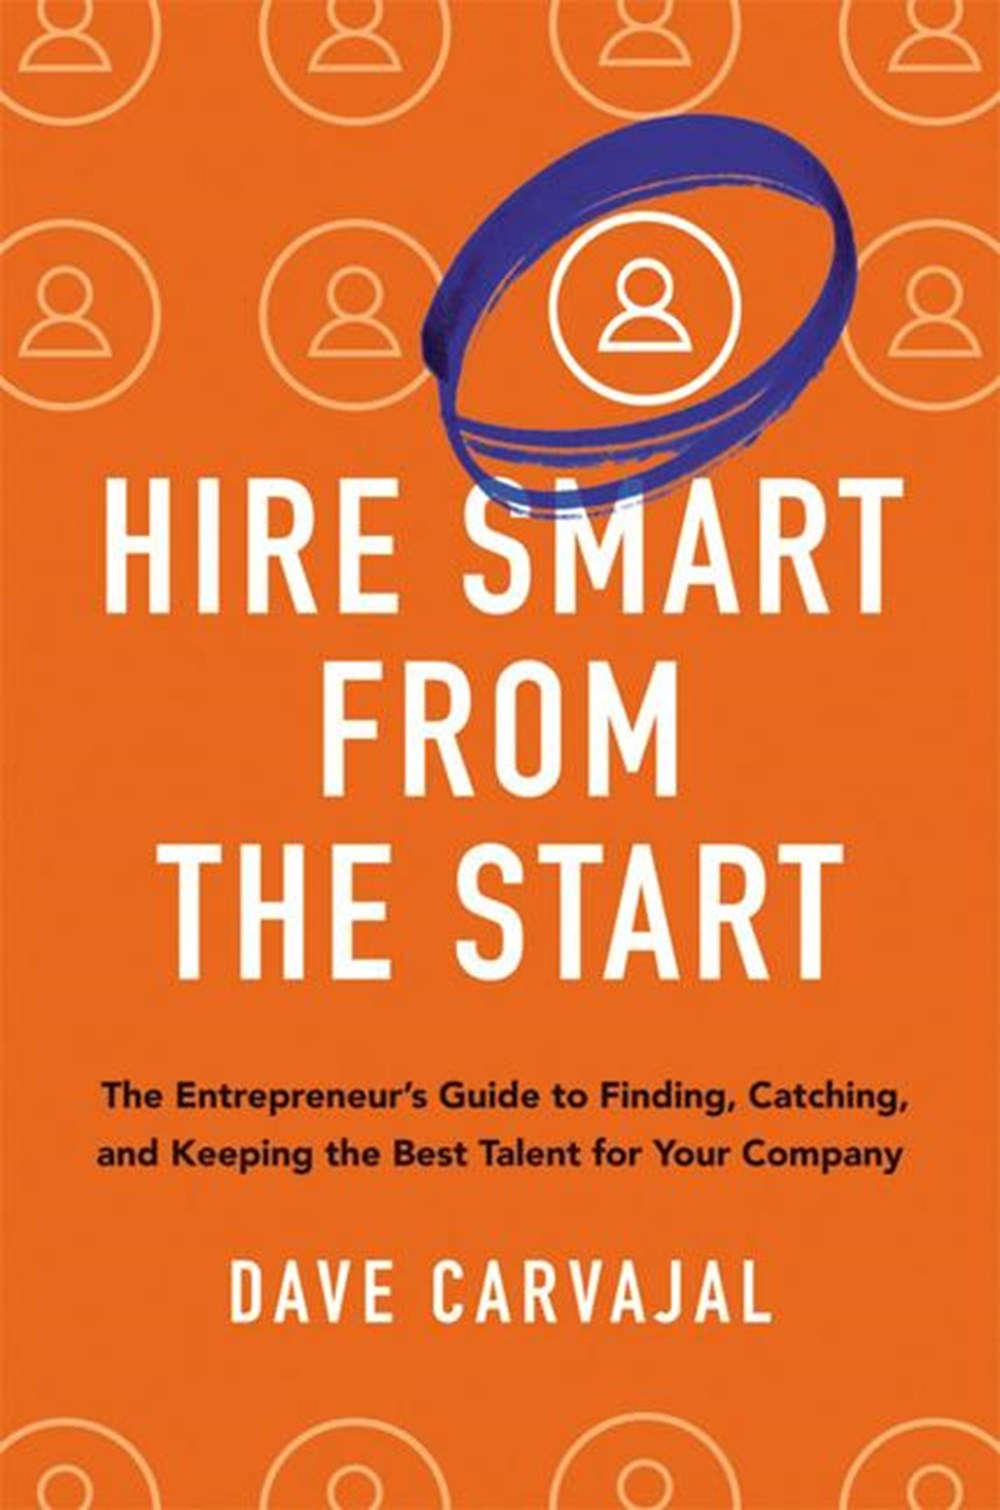 Hire Smart from the Start: The Entrepreneur's Guide to Finding, Catching, and Keeping the Best Talen